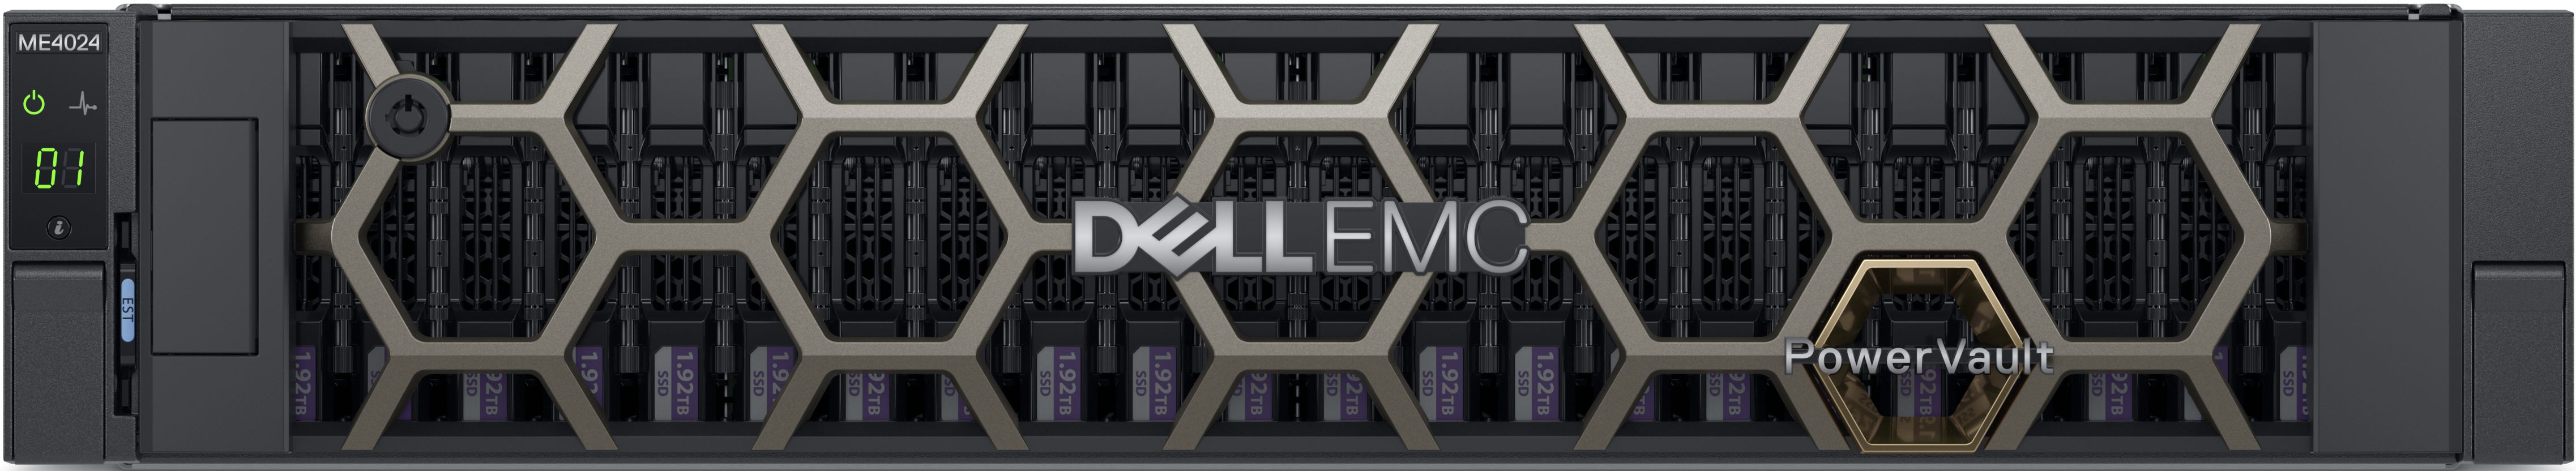 Dell-EMC-PowerVault-ME4024-Front